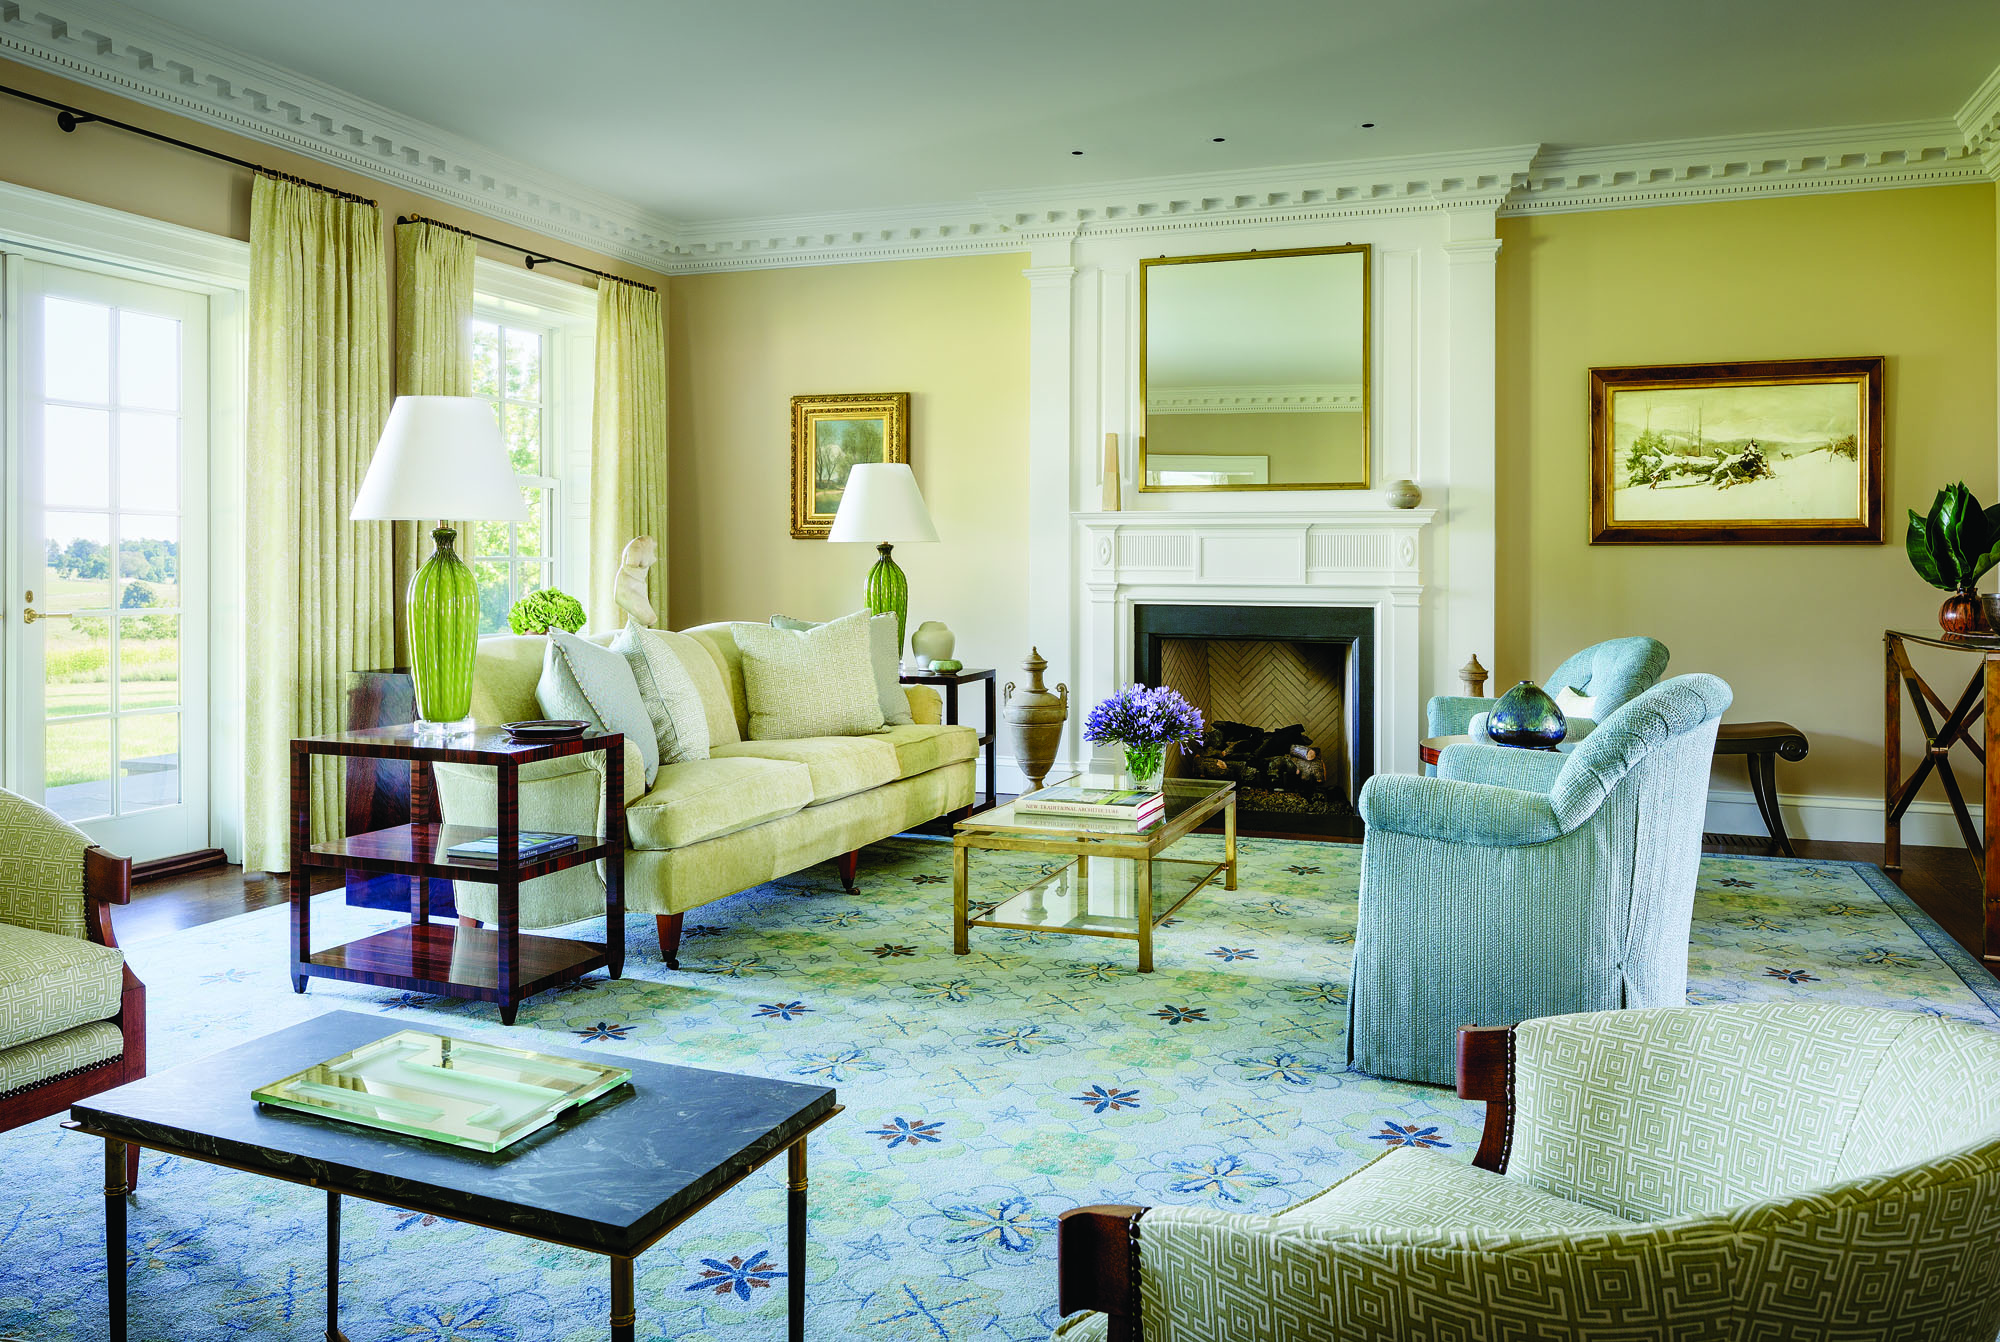 The living room is designed in soft blues and mellow yellows.